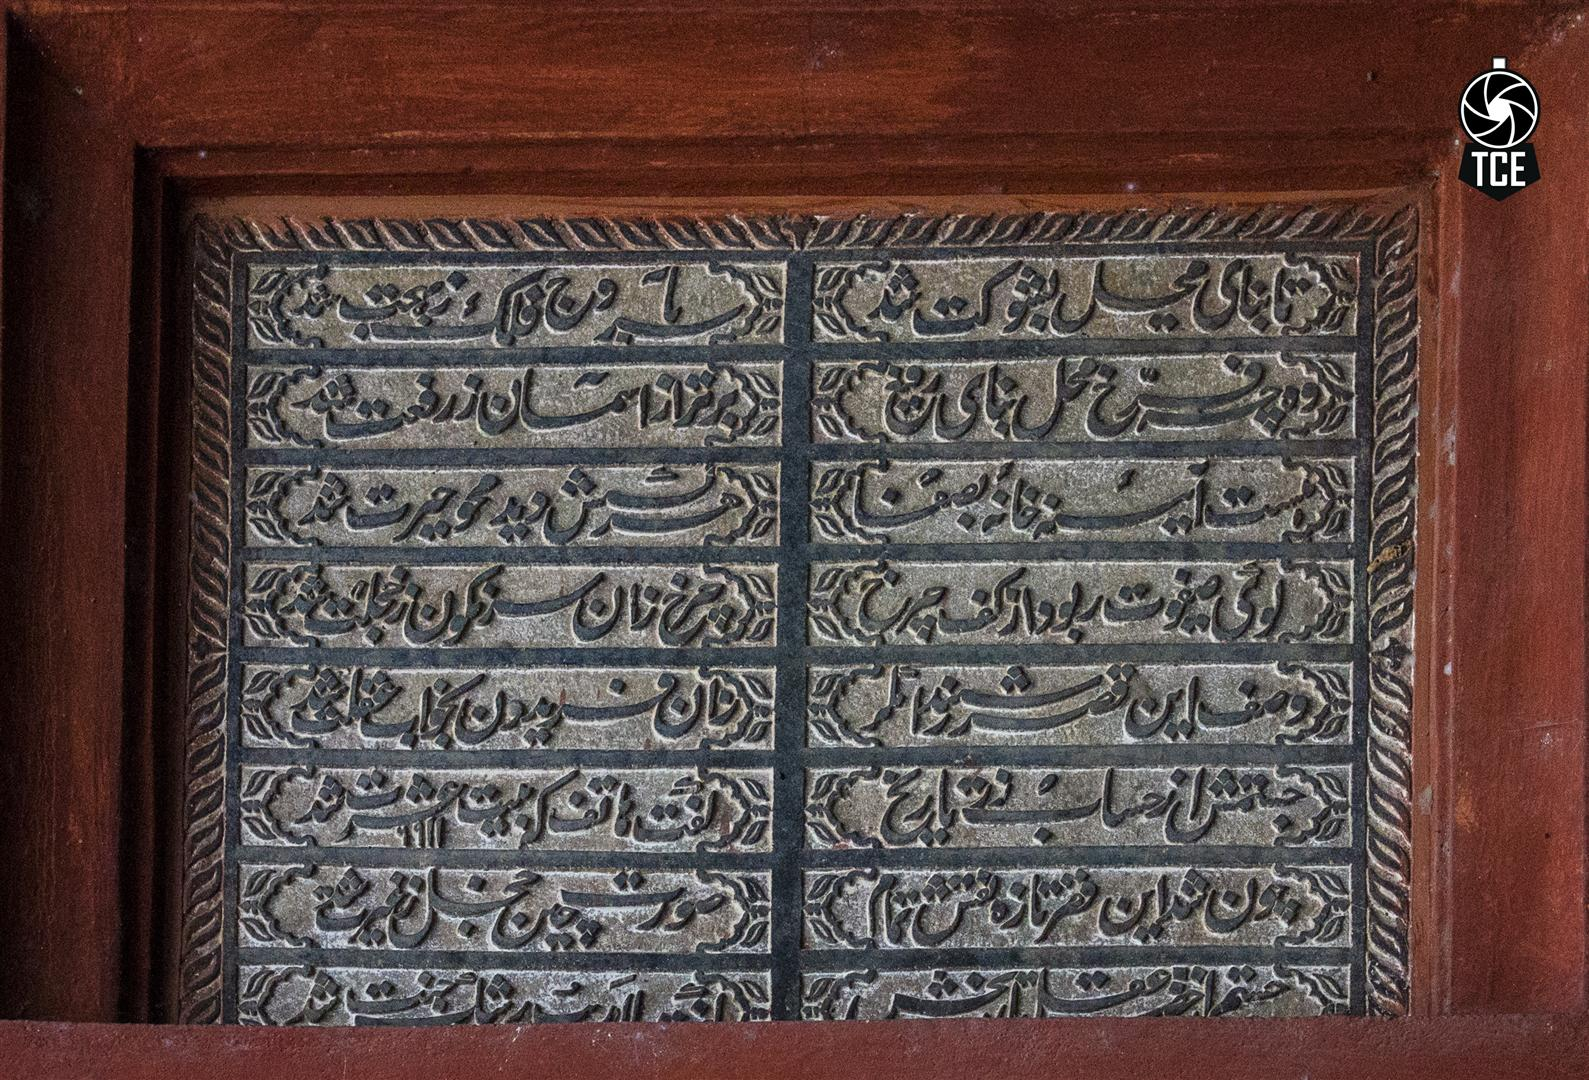 An Urdu Wall Panel.